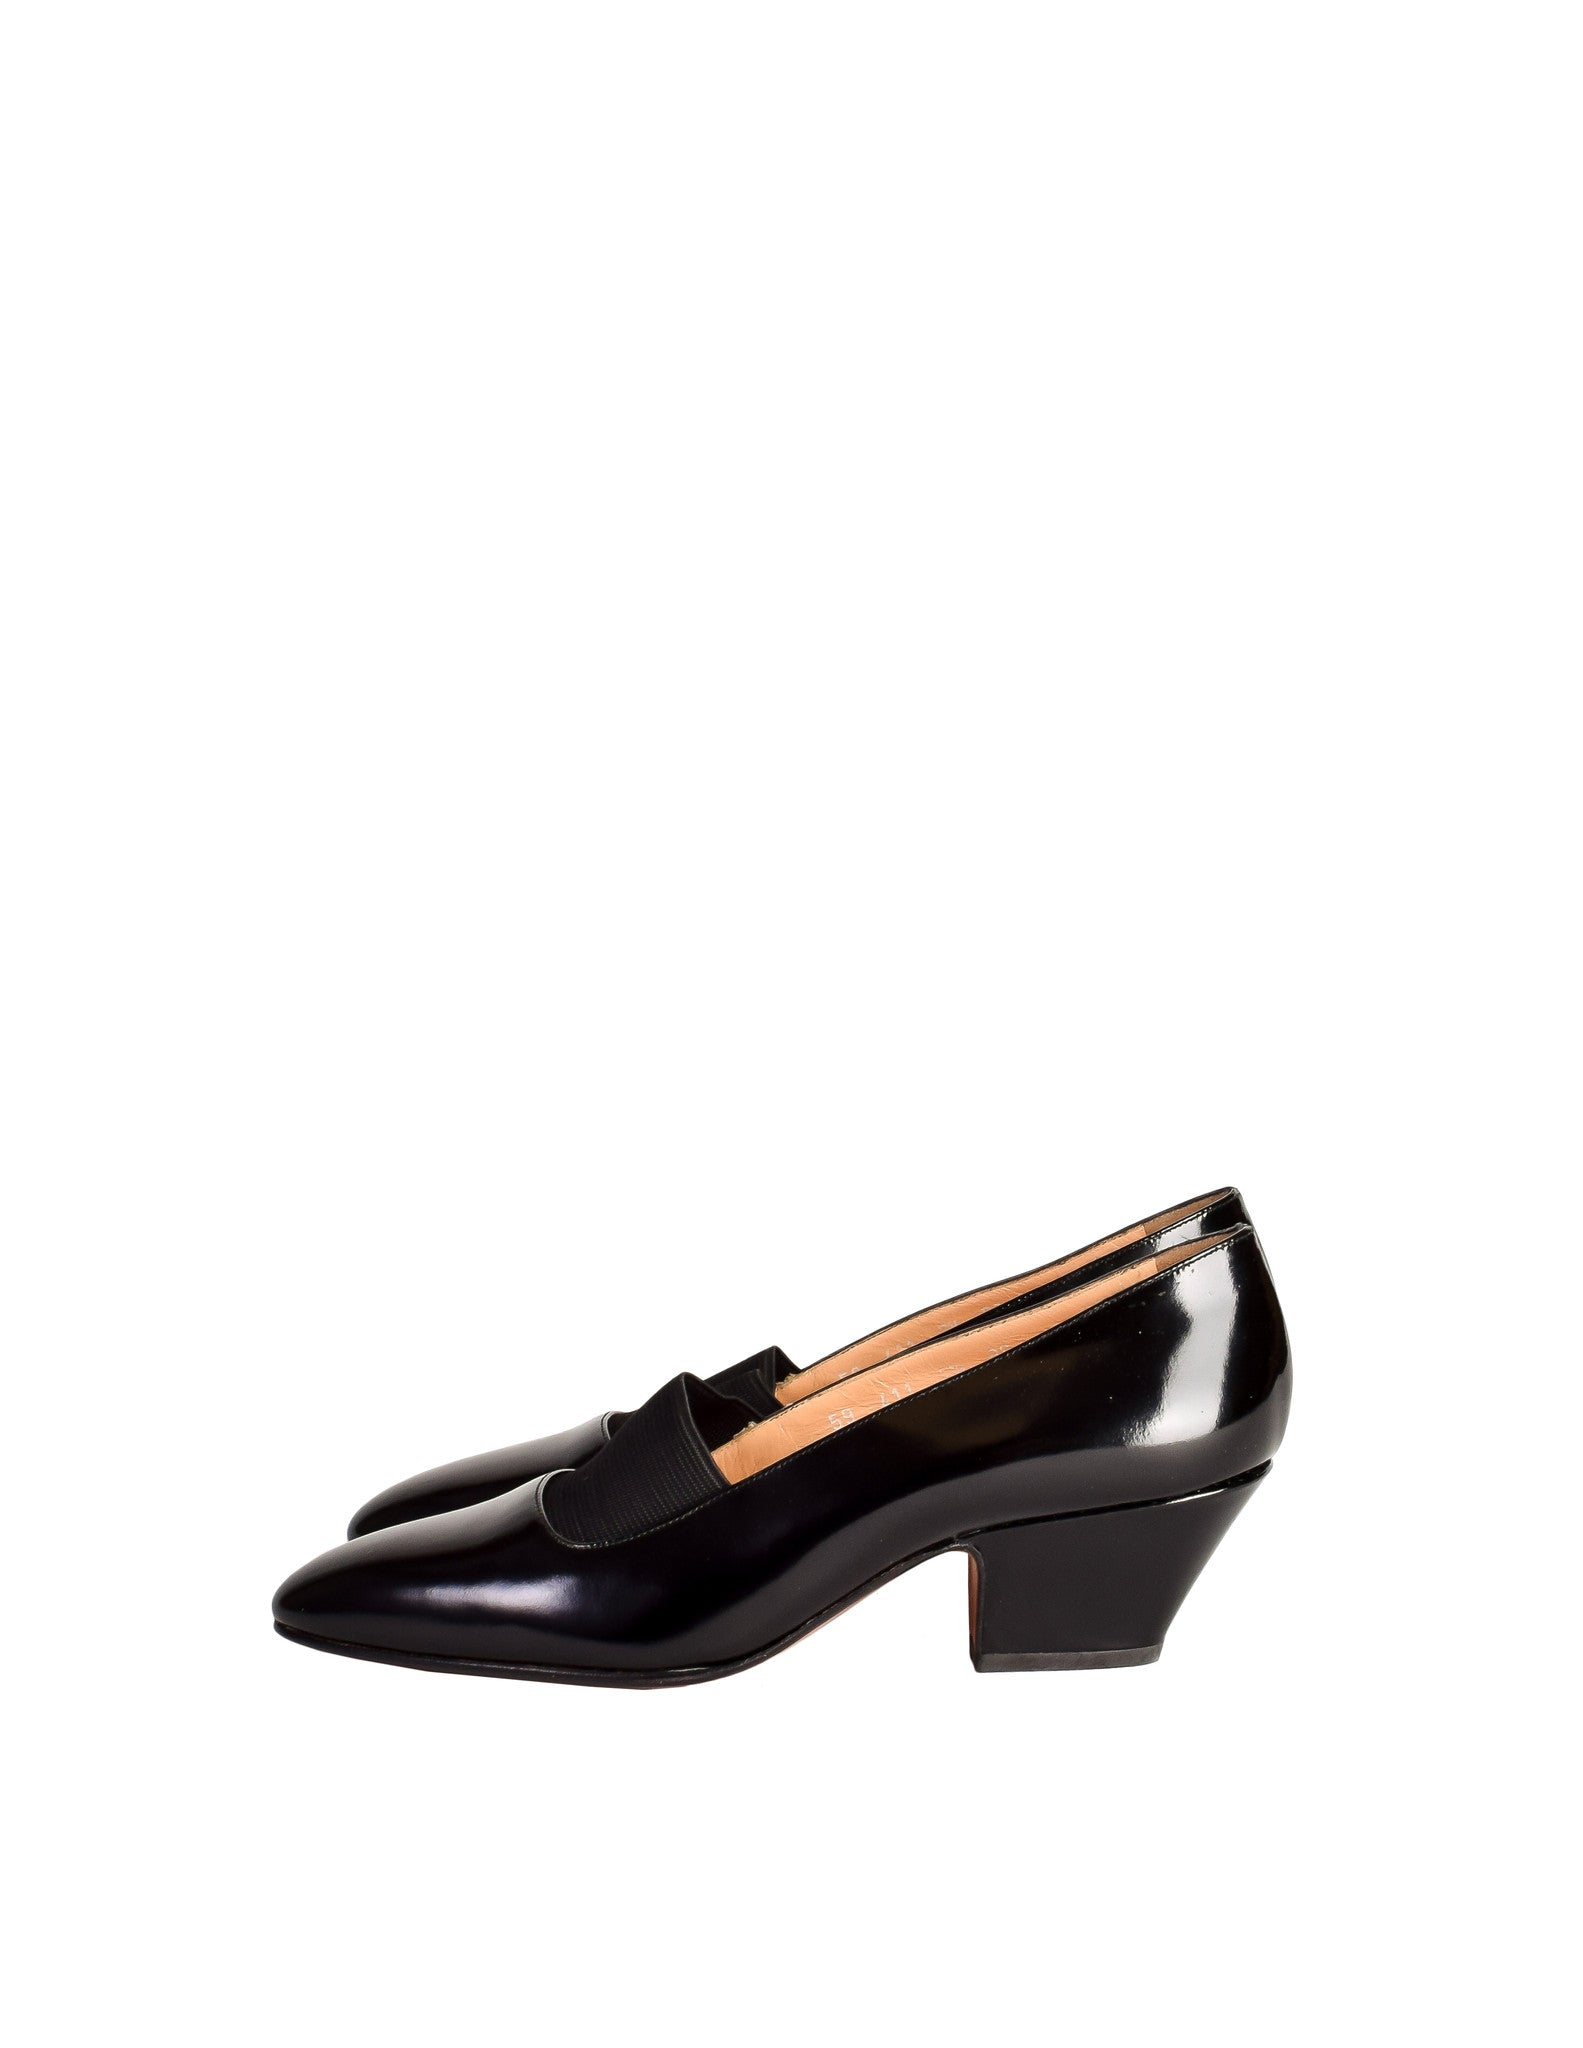 Chloe Vintage Black Patent Leather Stretch Panel Pointed Toe Heels - Amarcord Vintage Fashion  - 1